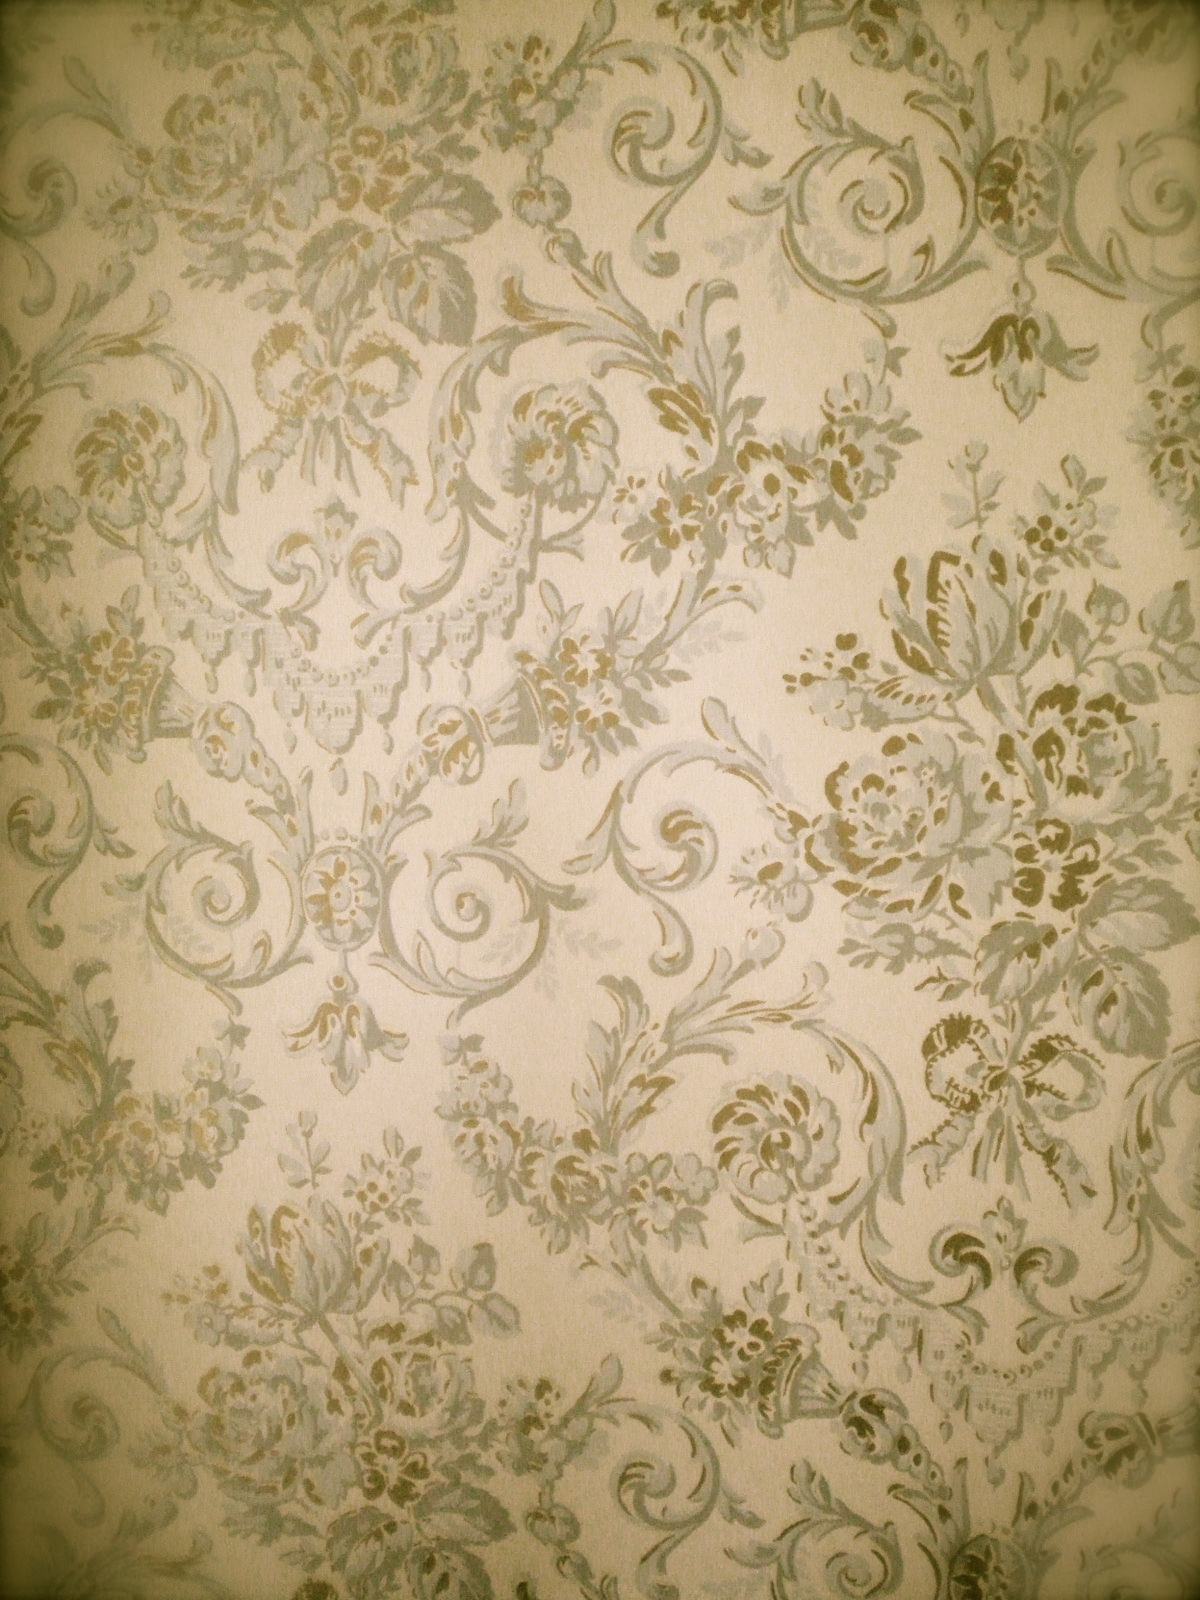 Purple And Black Damask Wallpaper J Jasmine Partida Always Hand Painted Always With Heart